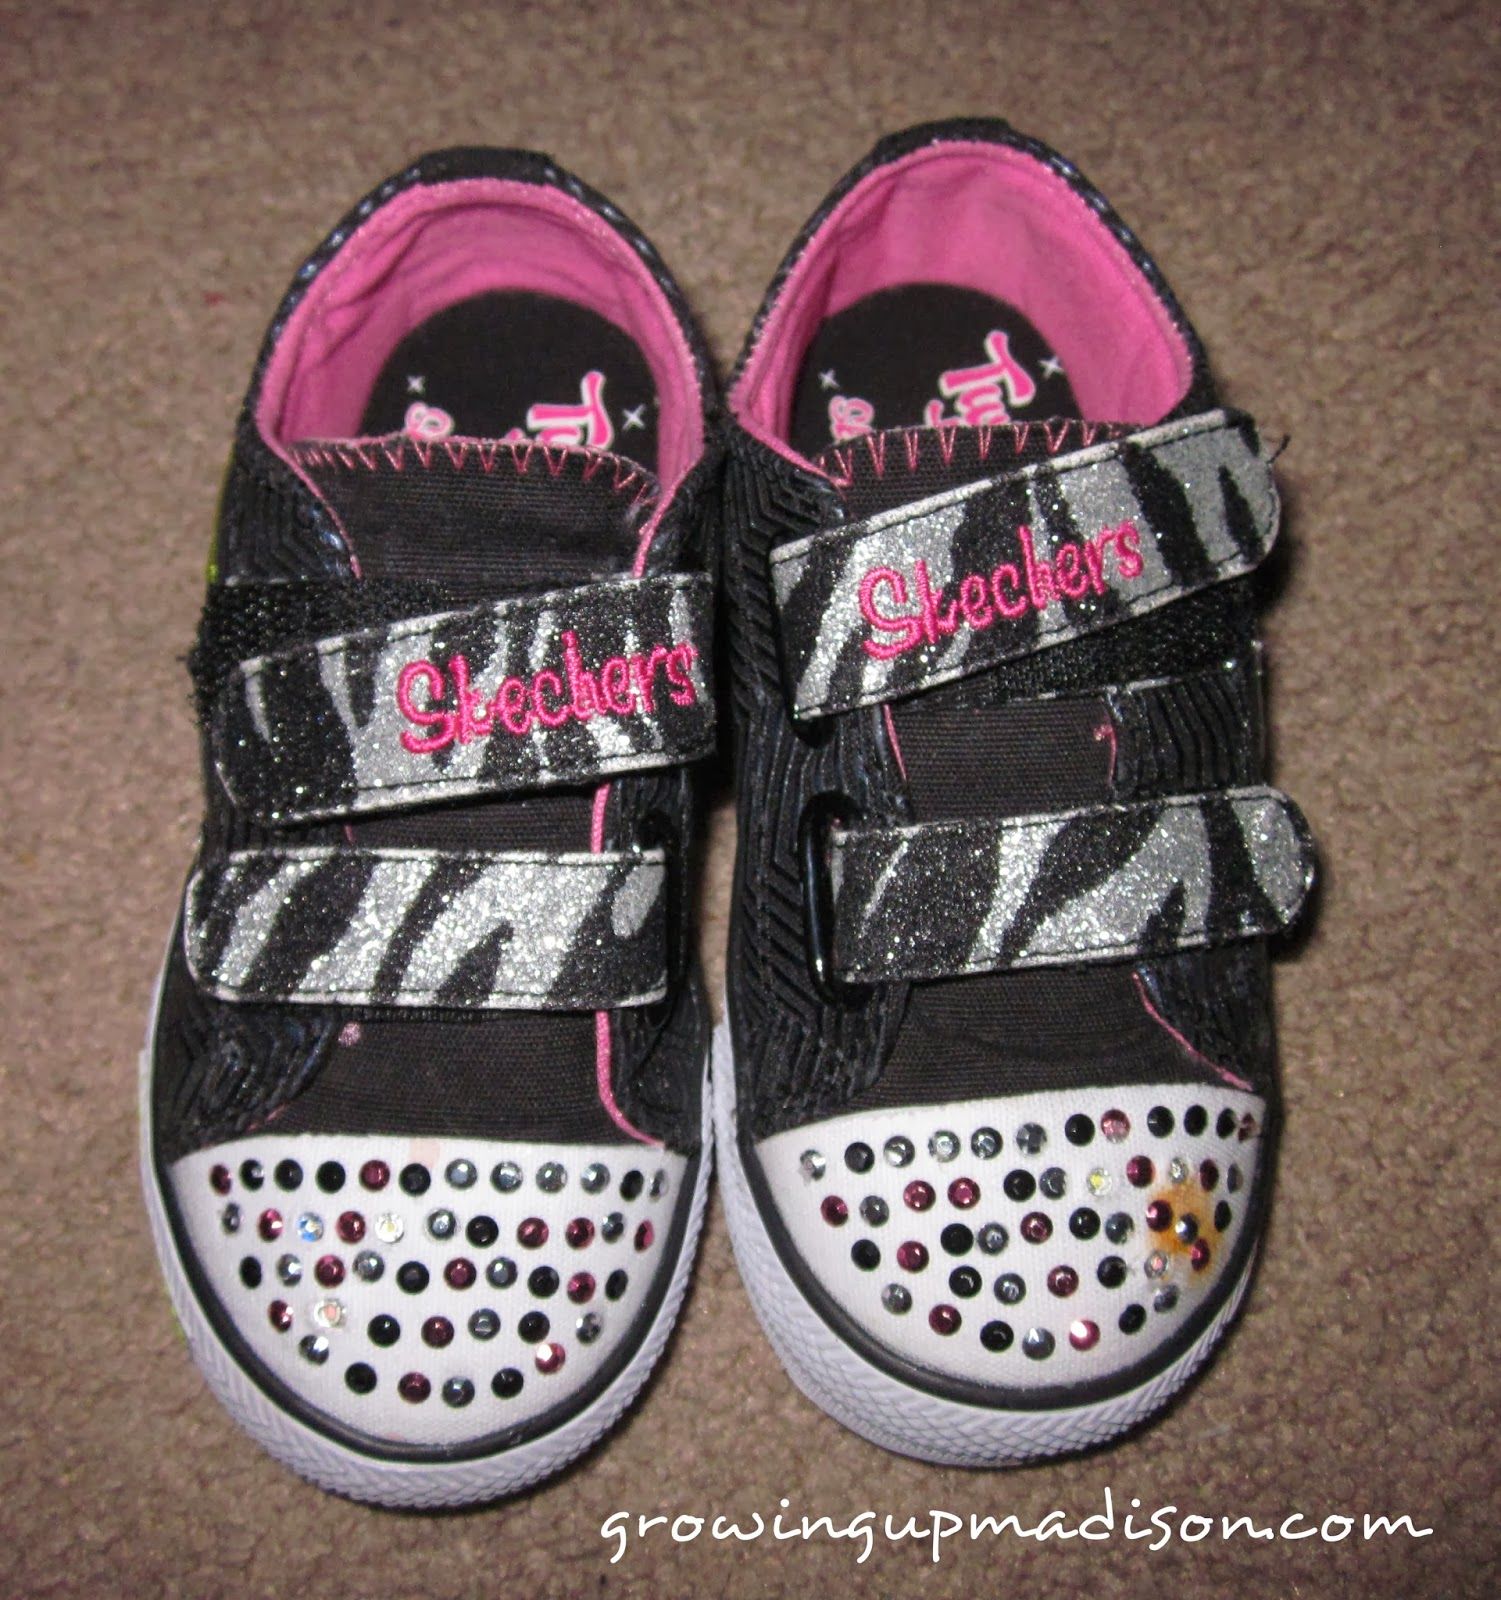 63ace4e14b1e My New Twinkle Toes features a toe cap design with lots of sparkles and  sequins. The entire shoe has sparkles throughout with a very cute chevron  design if ...